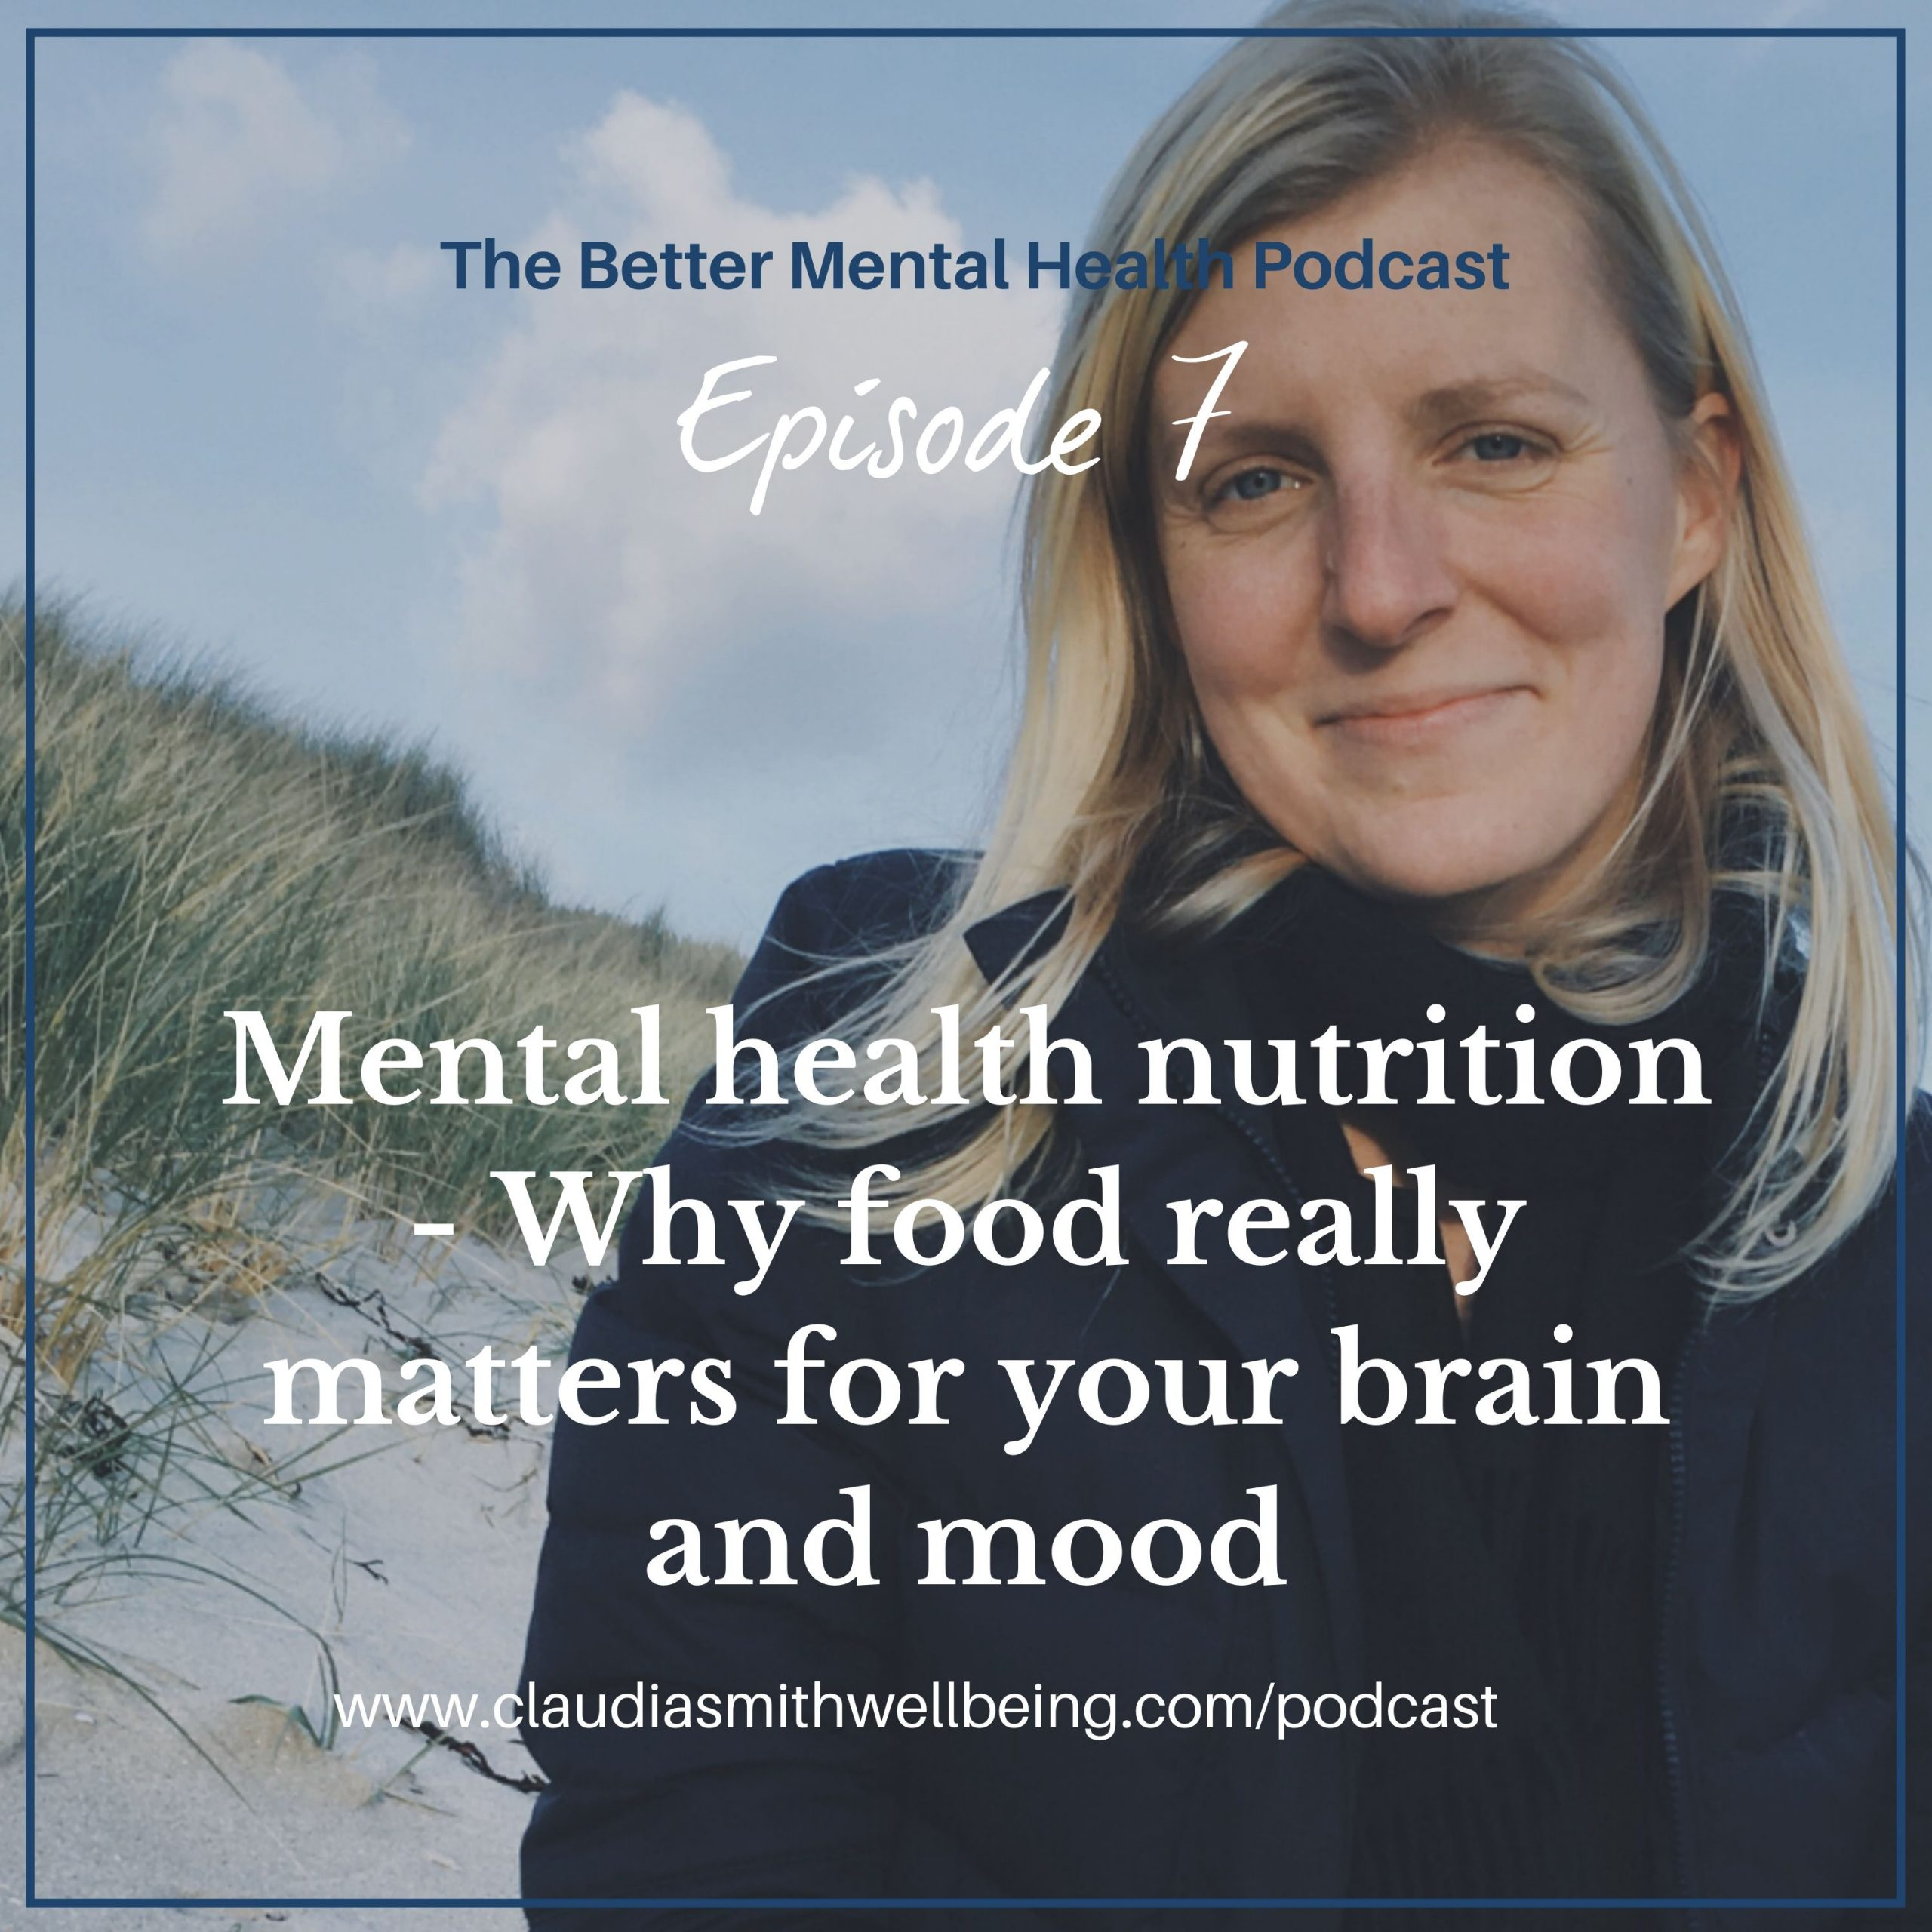 Mental health nutrition – Why food really matters for your brain and mood